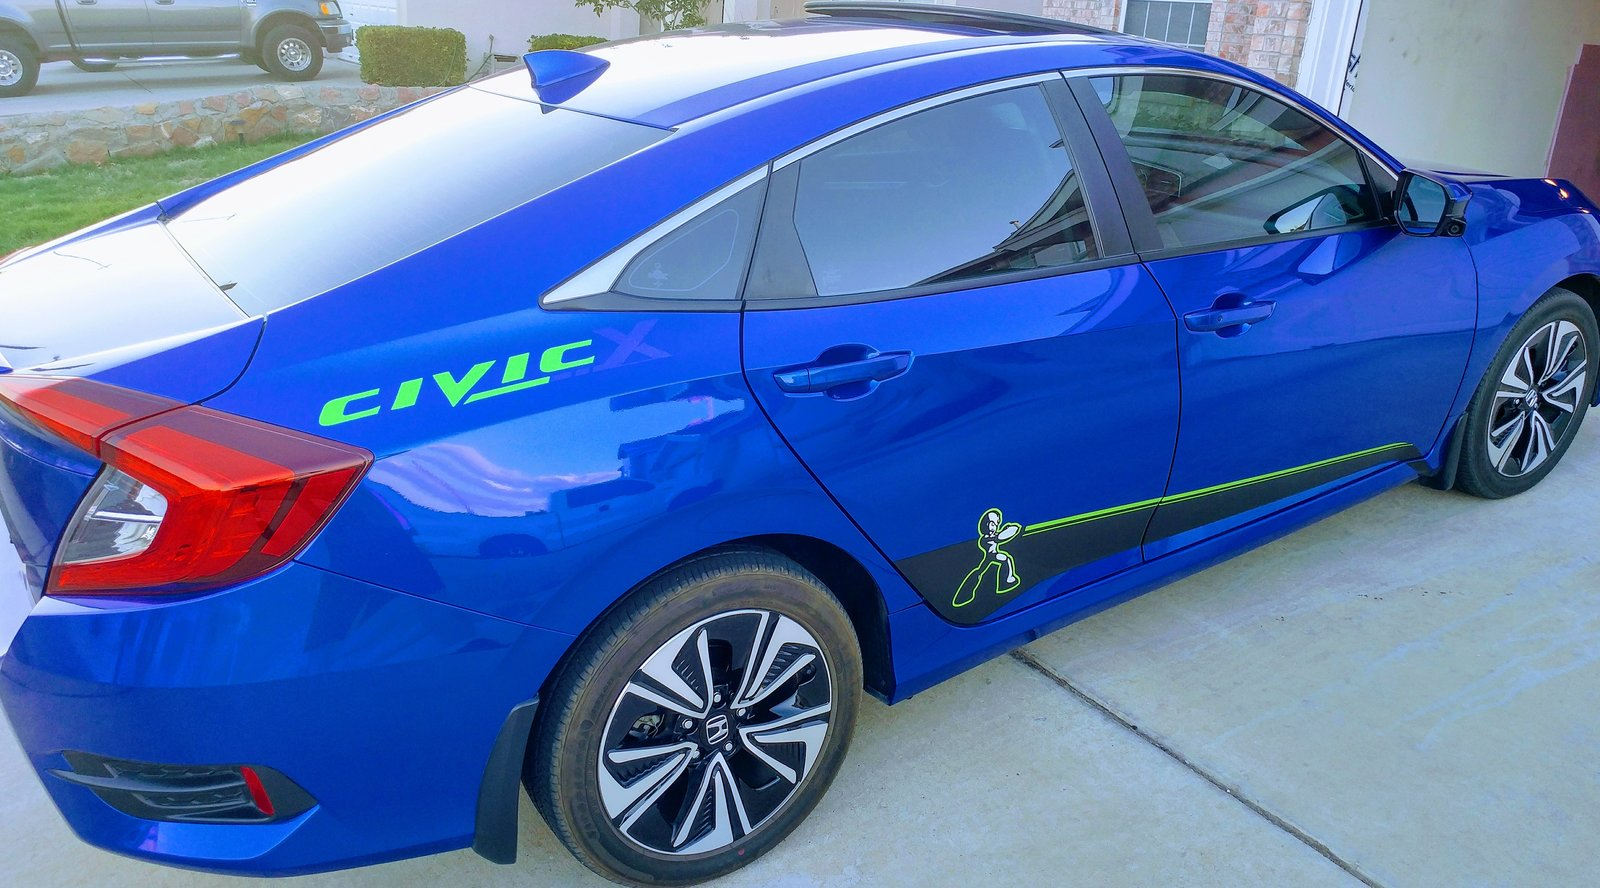 decals stickers civicx cafe civic honda si latest